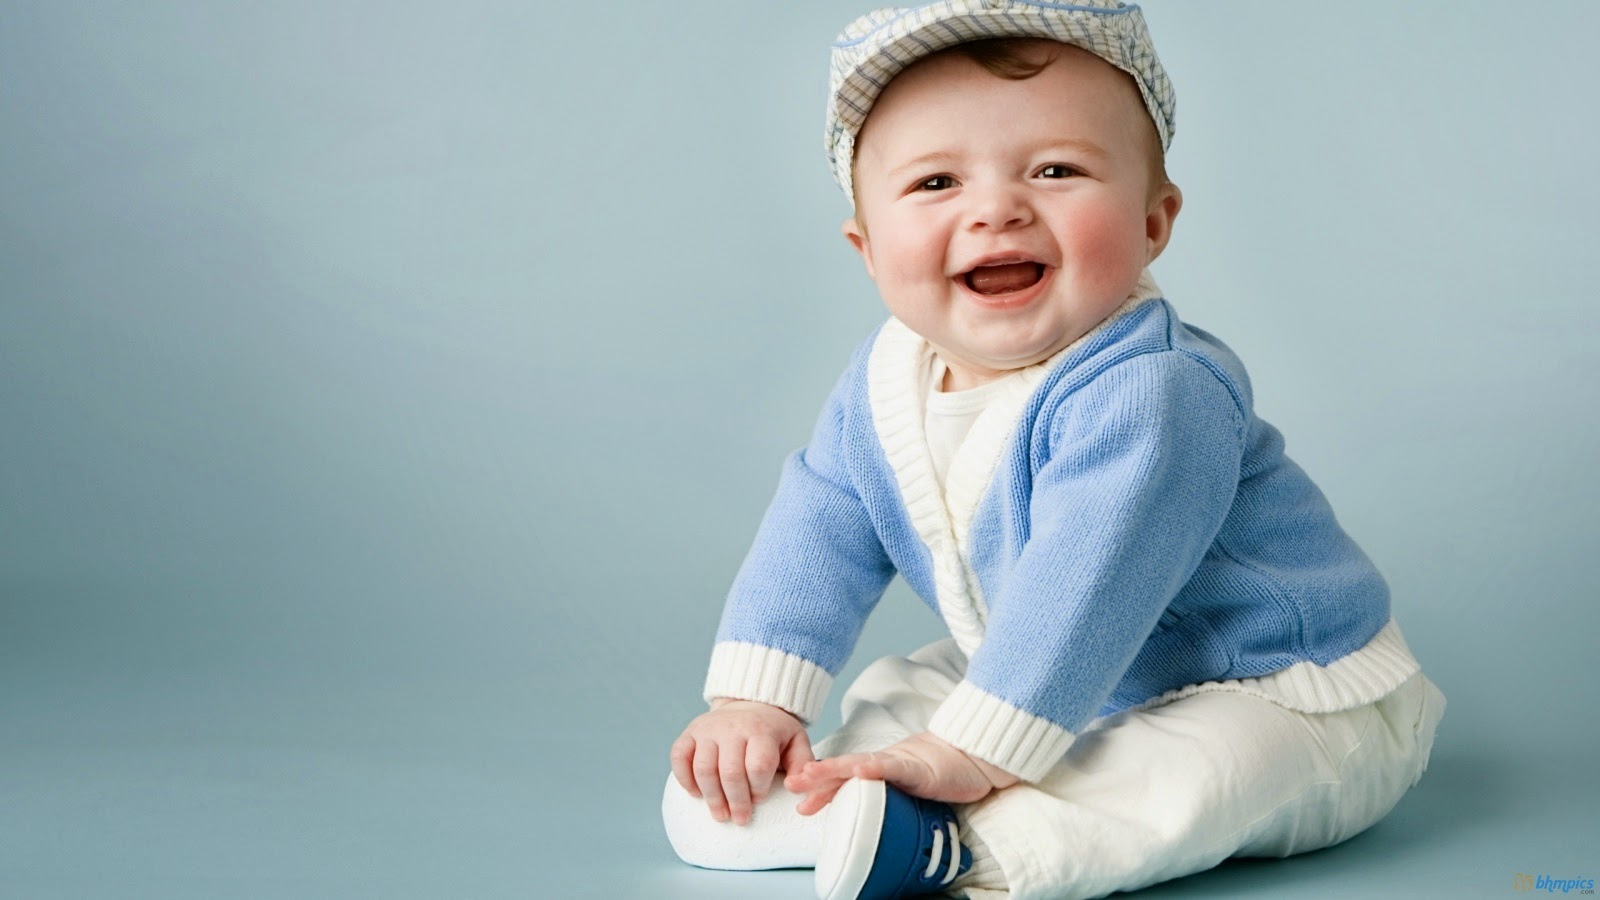 beautiful cute baby wallpapers | most beautiful places in the world